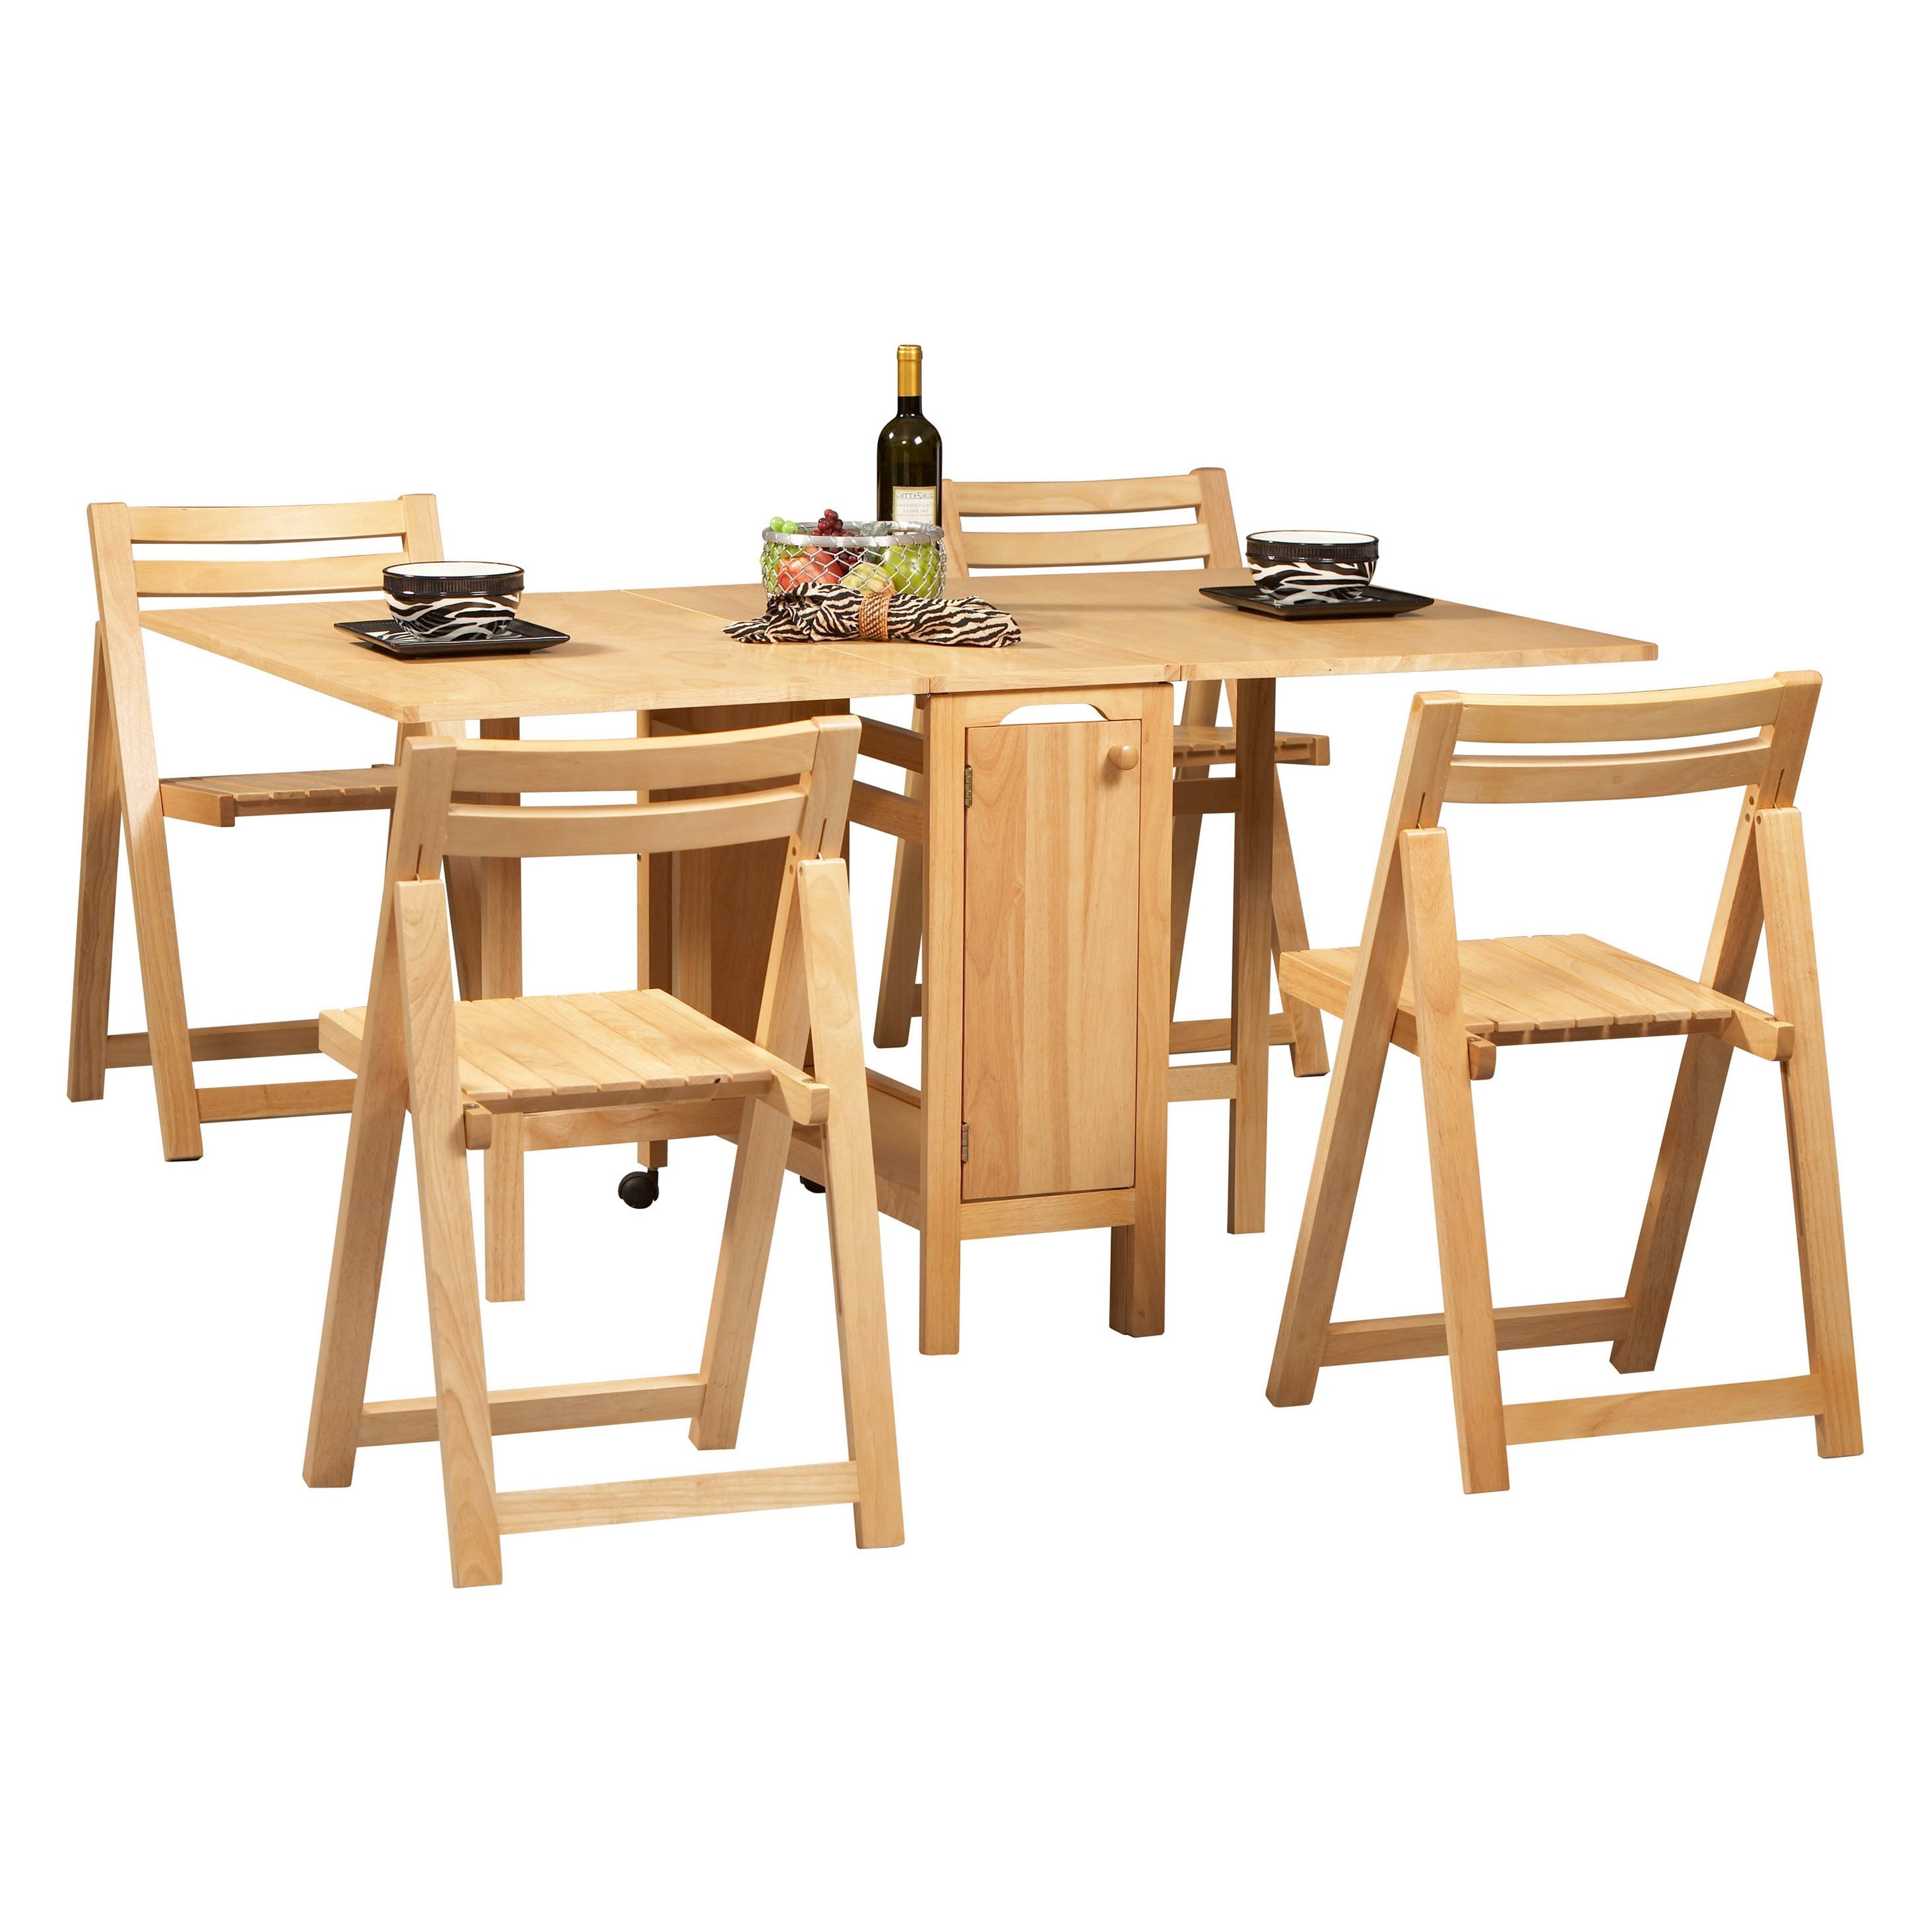 Folding Dining Table Sets – Castrophotos Intended For Well Known Wood Folding Dining Tables (View 10 of 25)